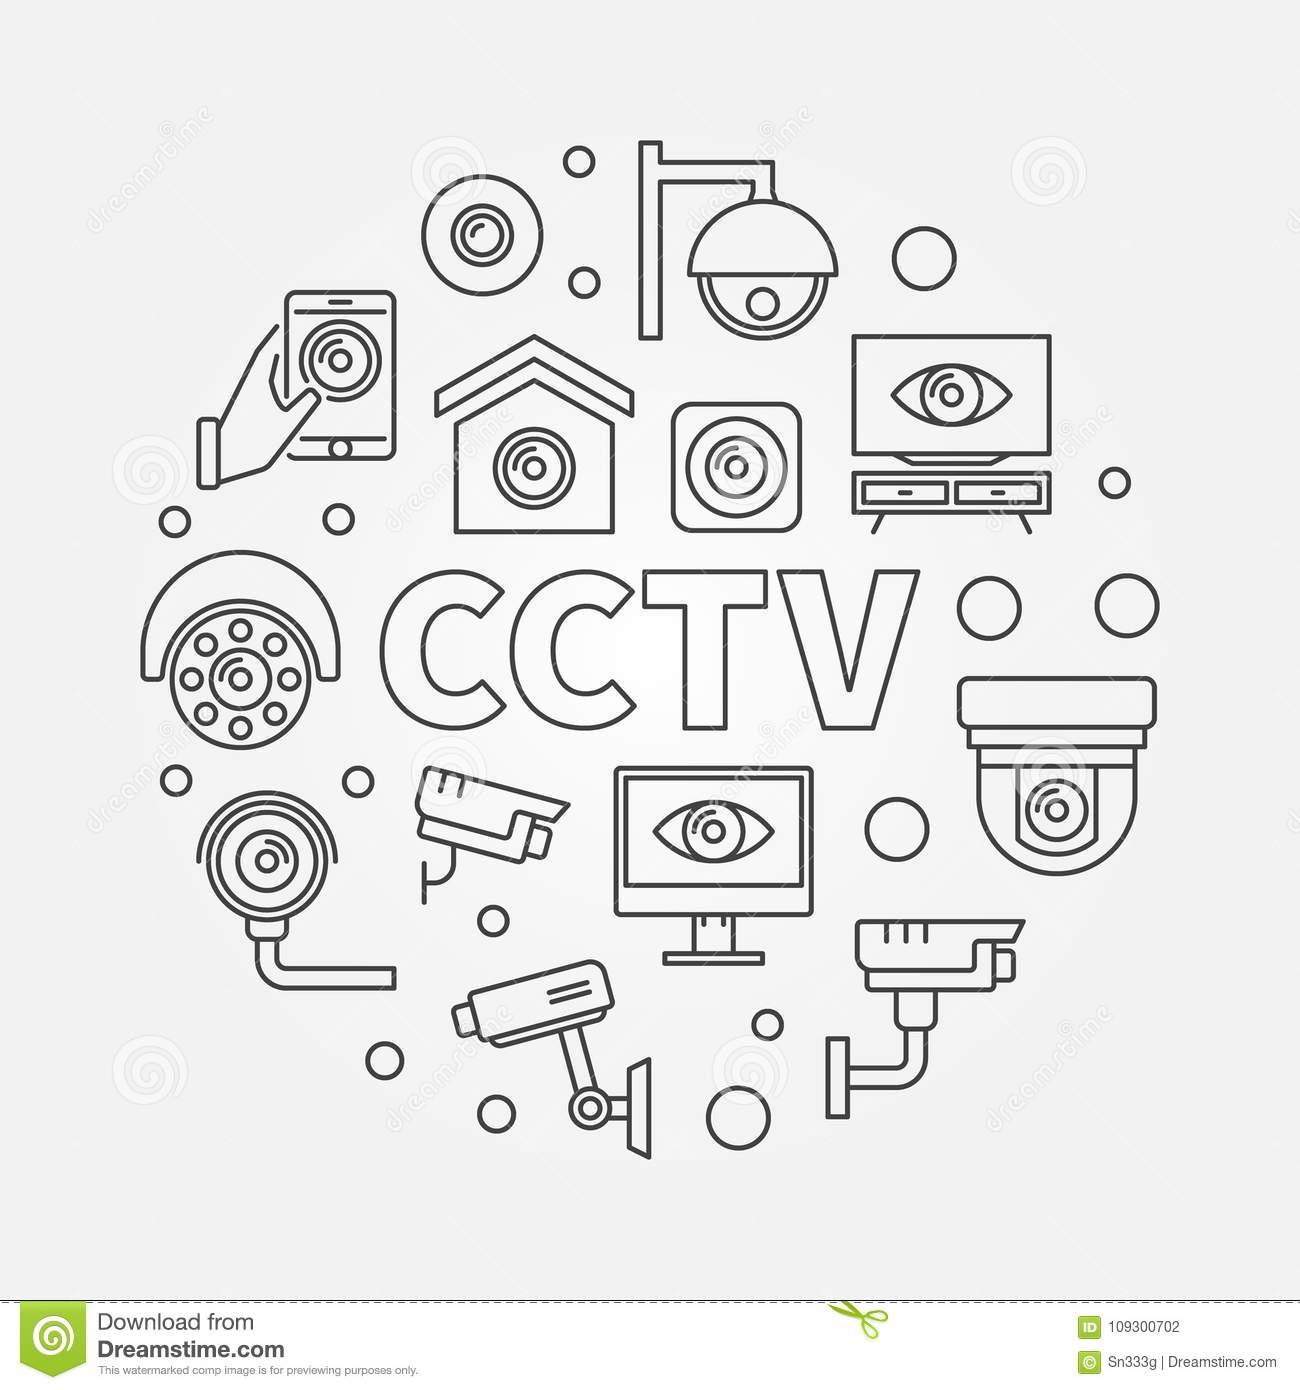 Circle Closed Circuit Worksheet And Wiring Diagram Short A Is In Cctv Round Illustration Vector Modern Line Symbol Stock Rh Dreamstime Com